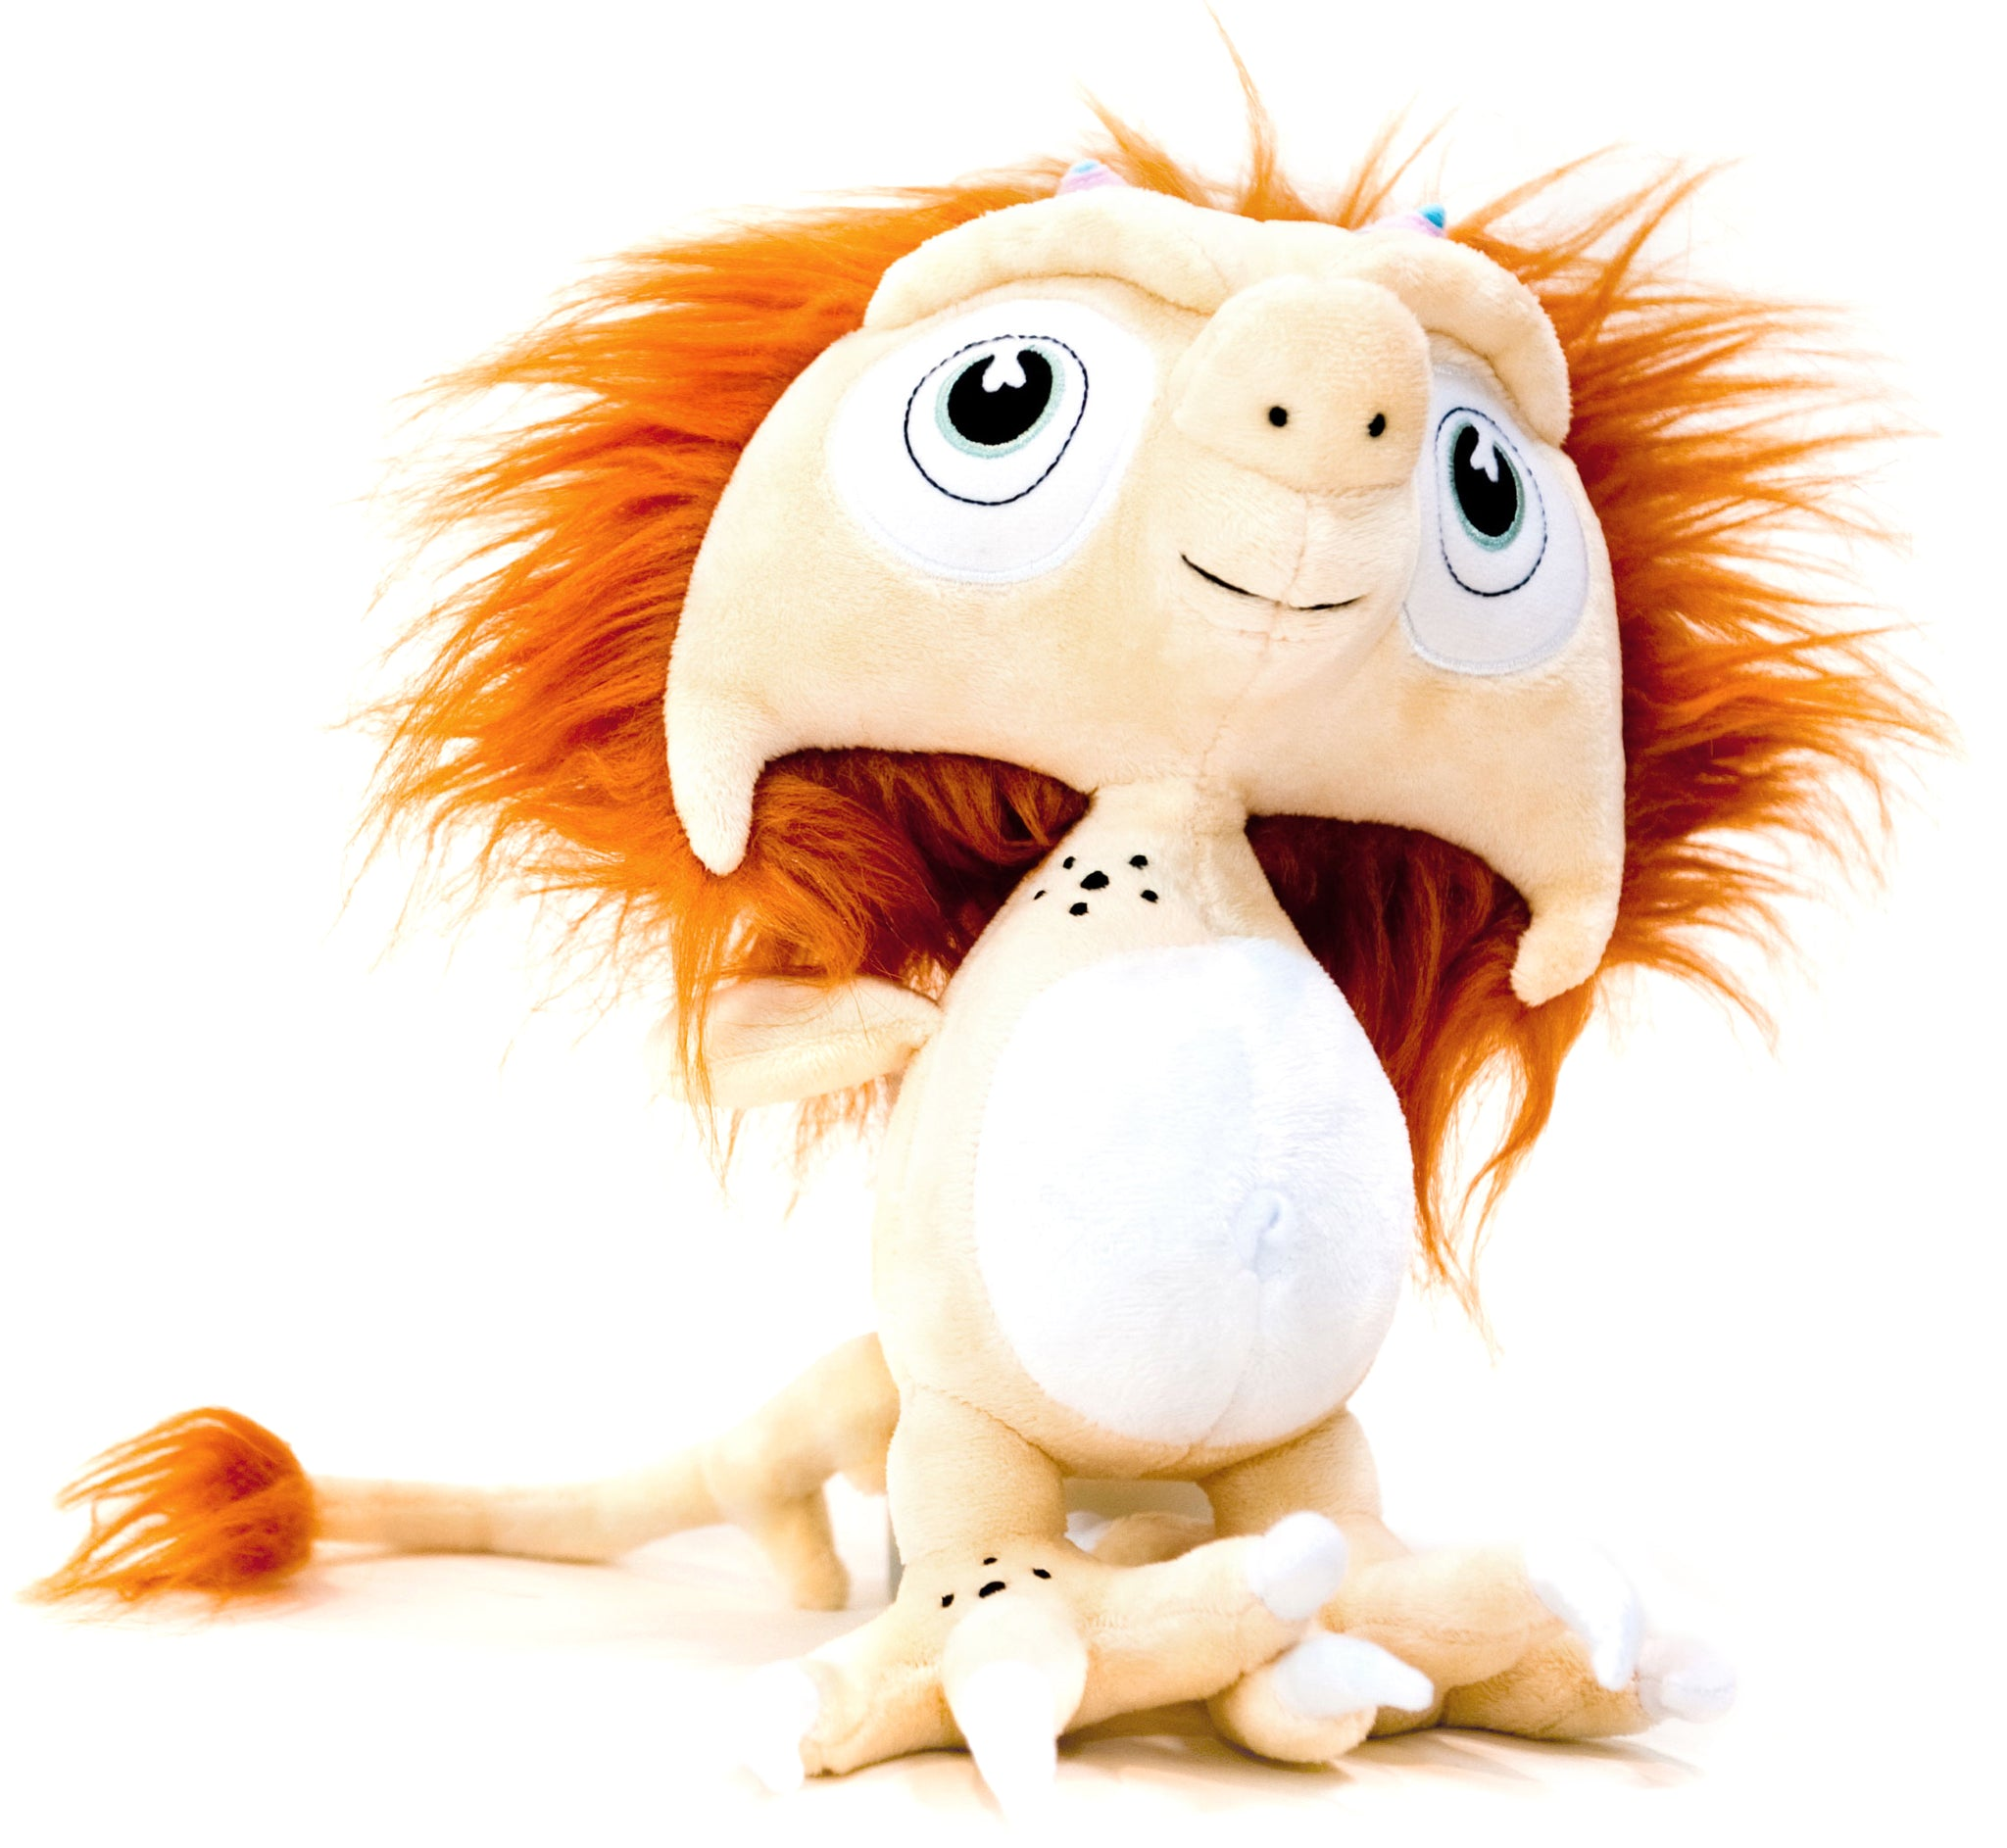 Fuddle - The Monster of Confusion - WorryWoo Plush Toy